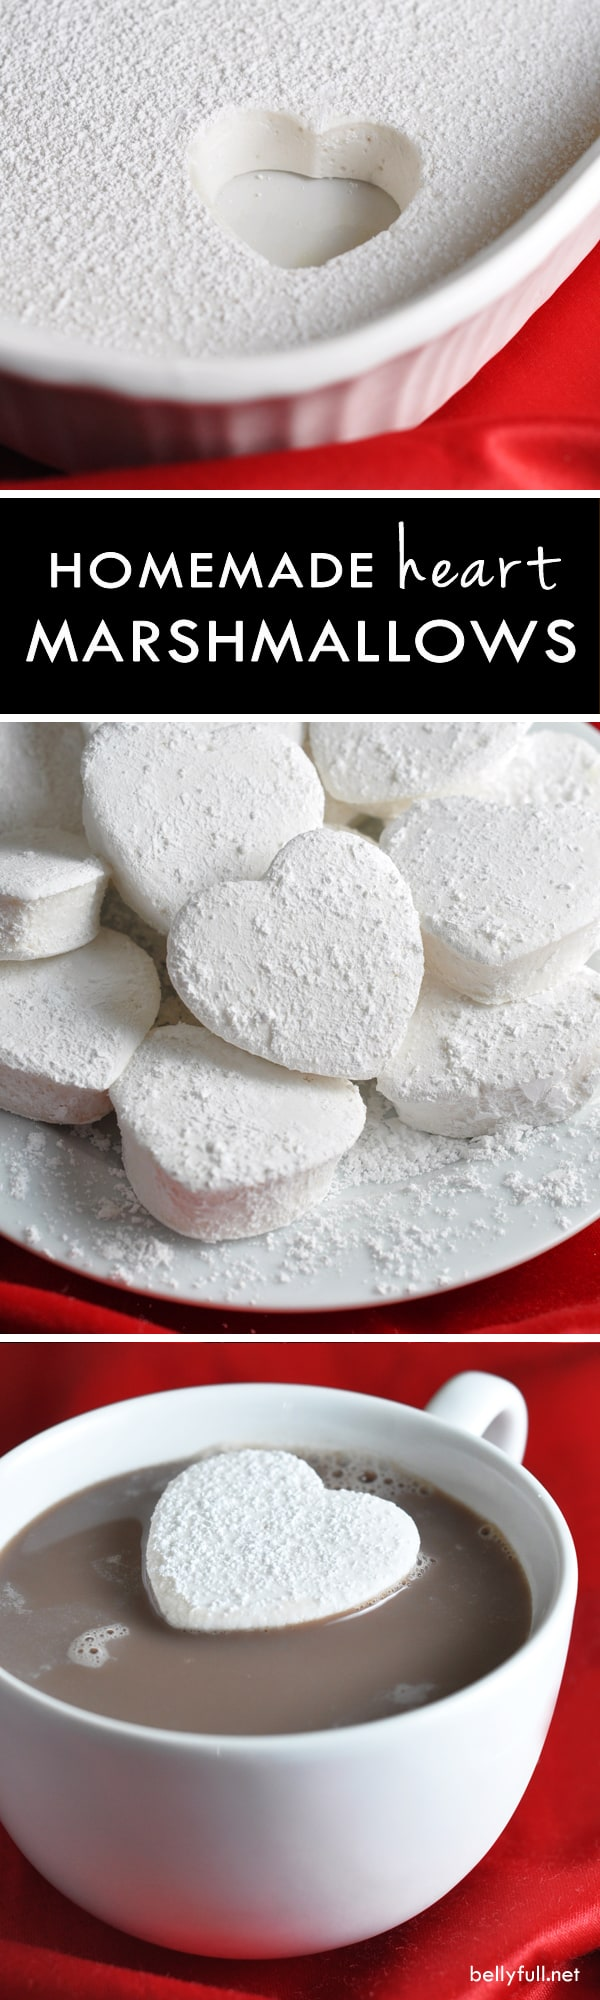 pin homemade marshmallows